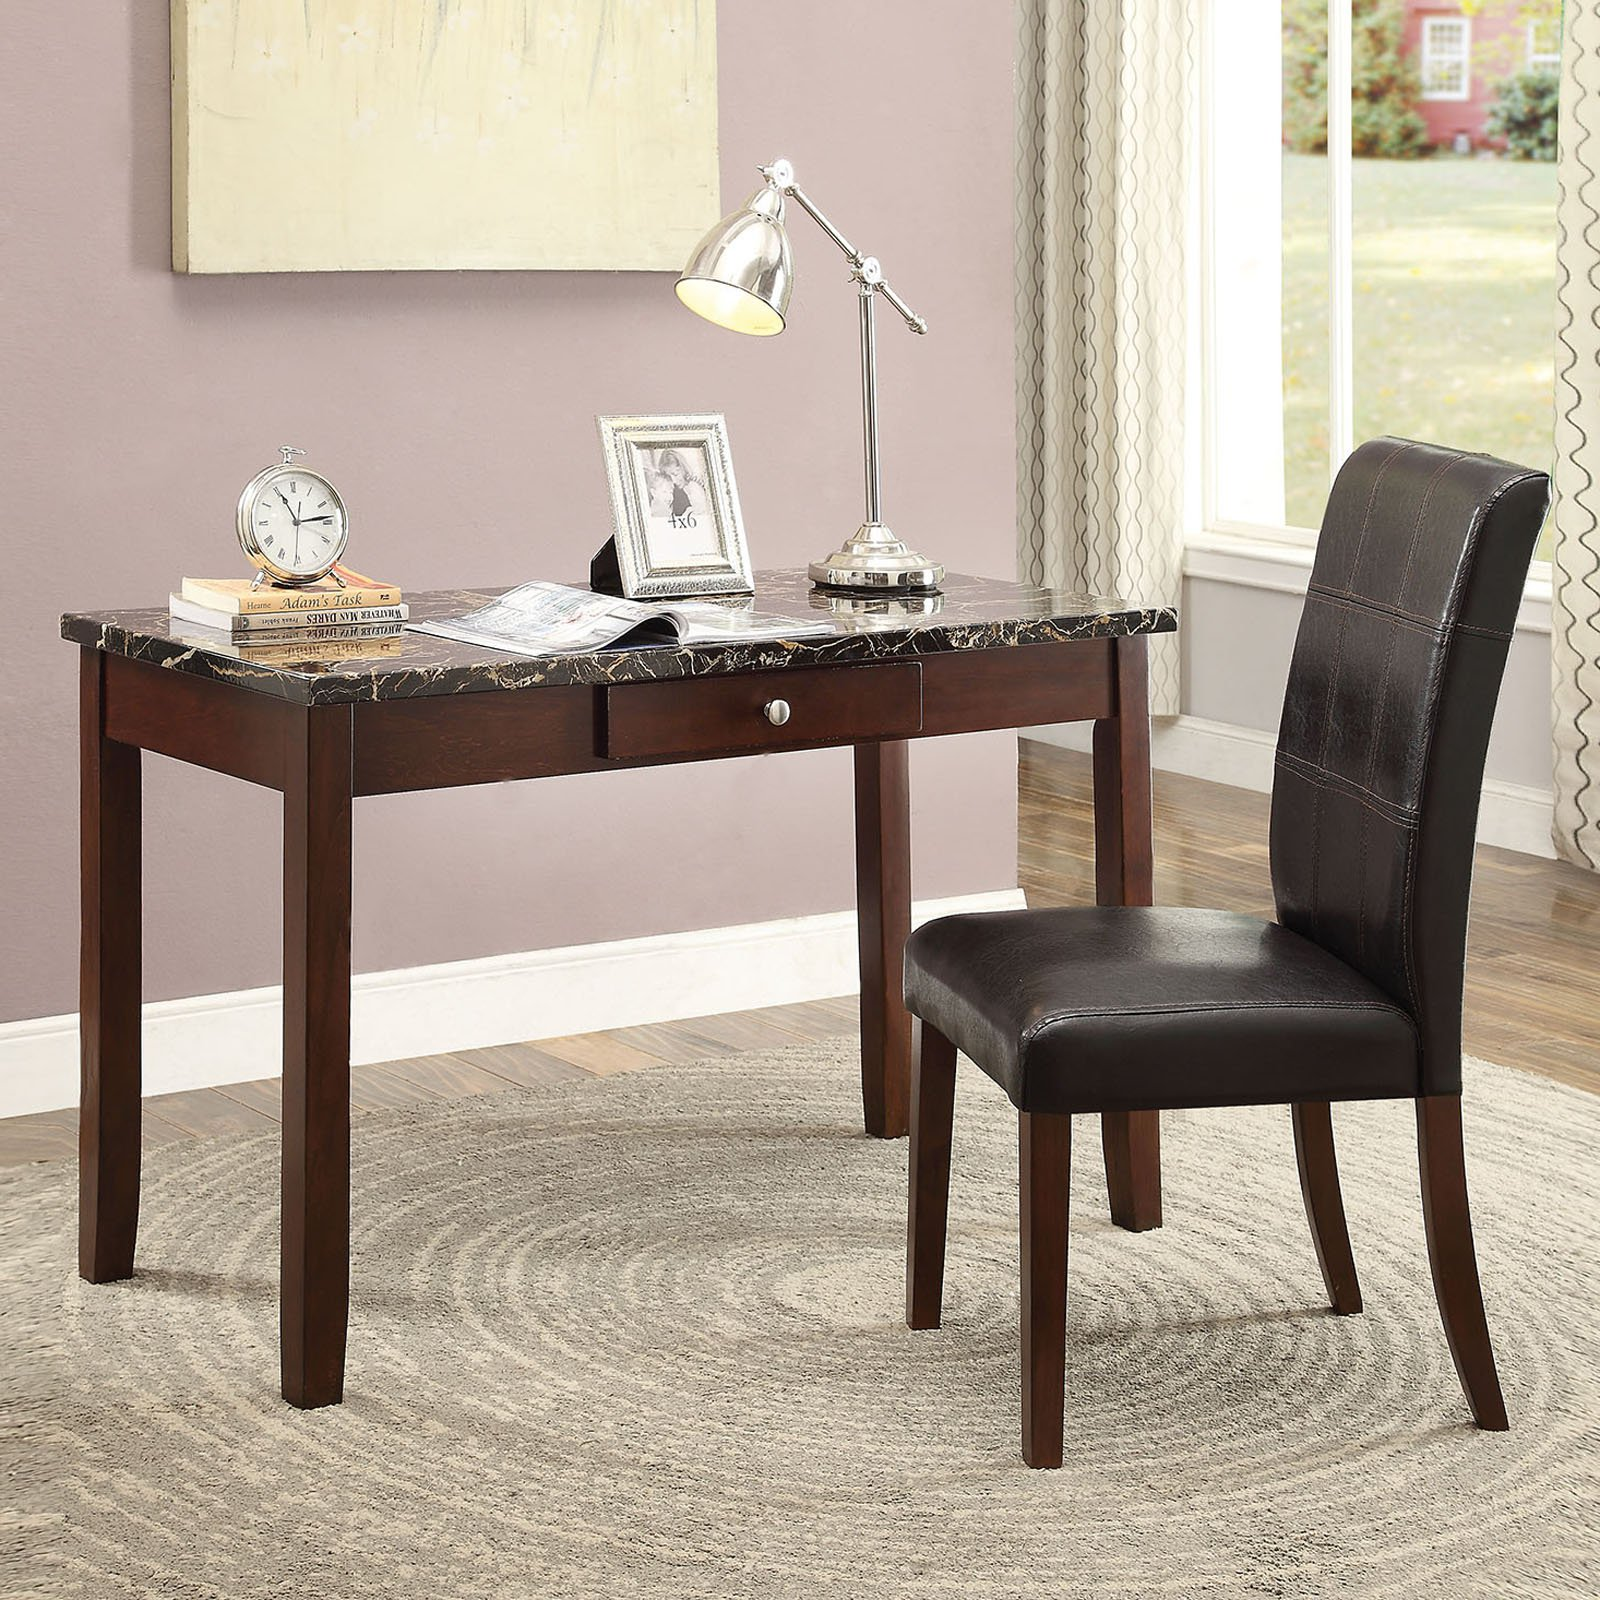 Sydney 2-Piece Pack Desk and Chair, Black Faux Marble and Dark Walnut